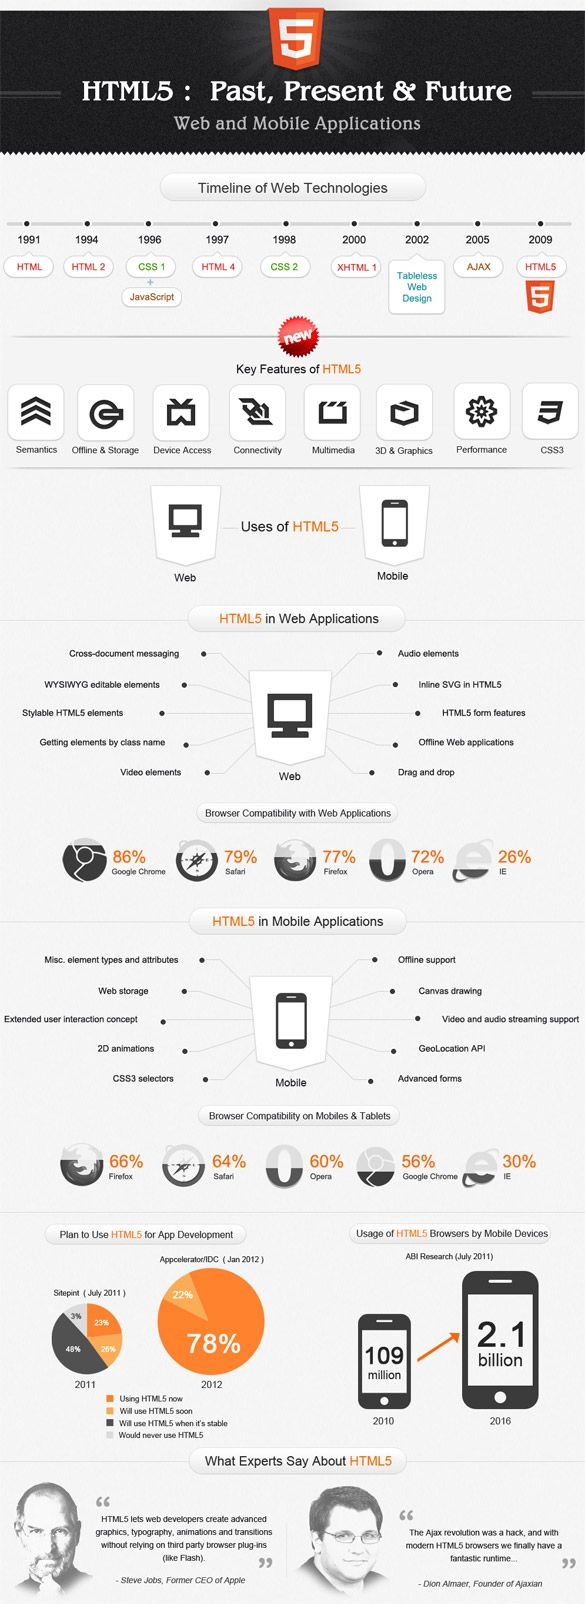 Le Html5 En Infographie Le Web Developpeur Informatique Developpement Web